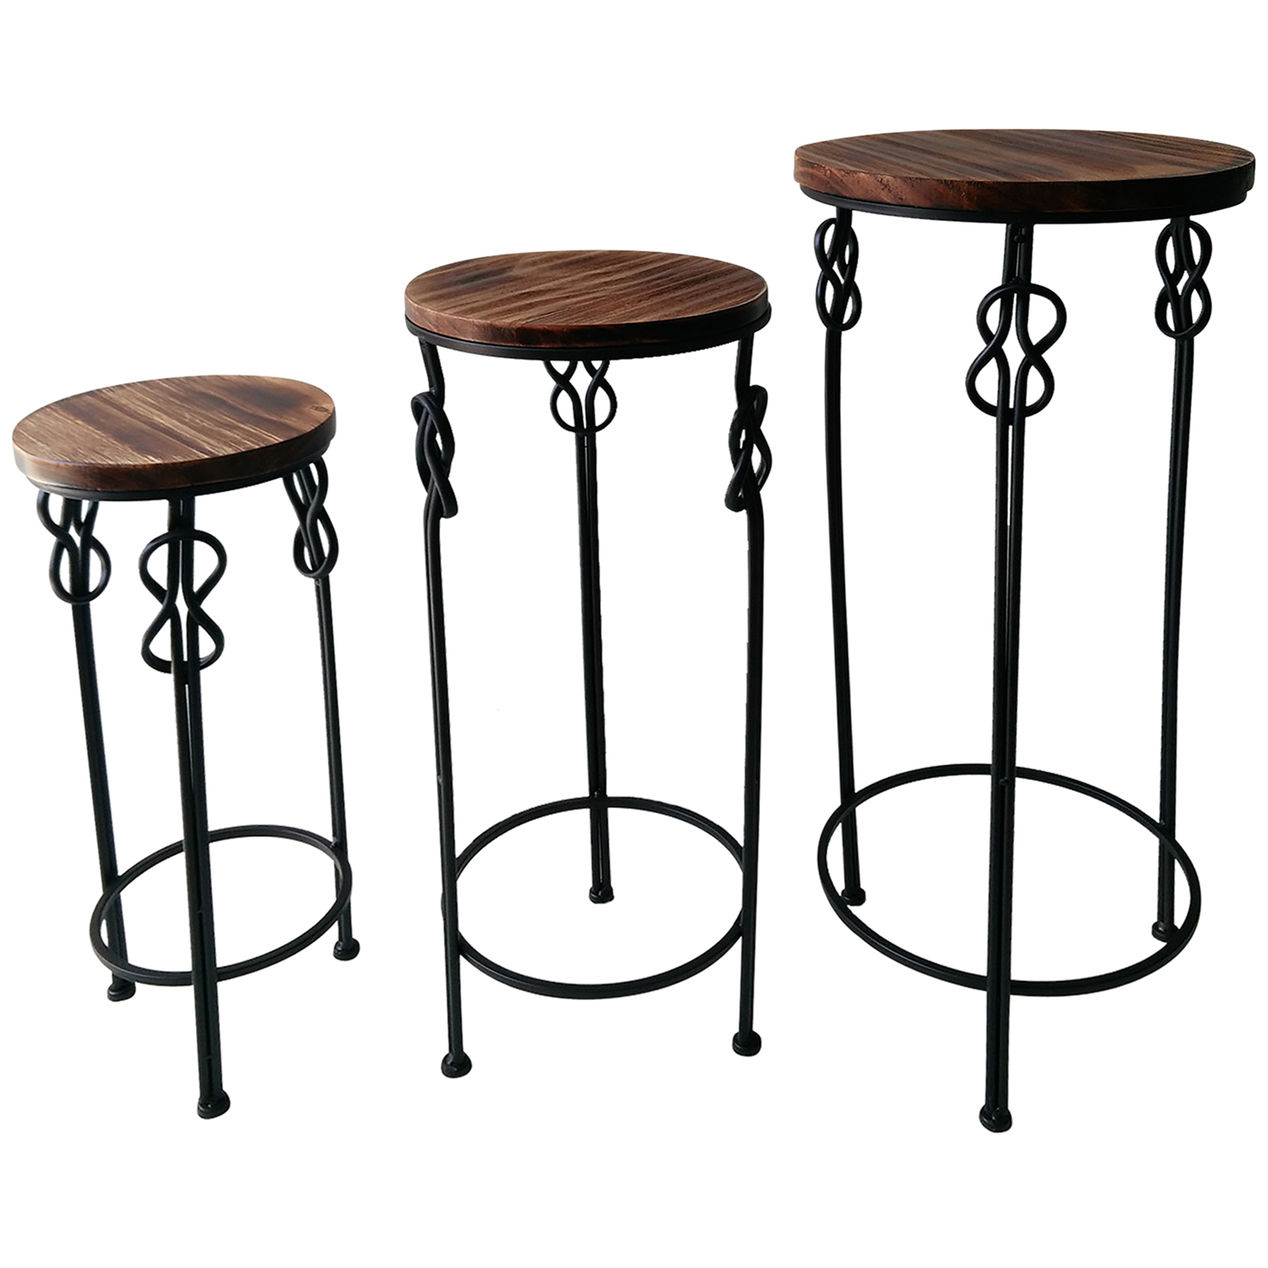 large round wood steel knot accent table home and metal amp pottery barn floor lighting top lamps bath beyond area rugs white living room cabinet marble coffee patio with umbrella